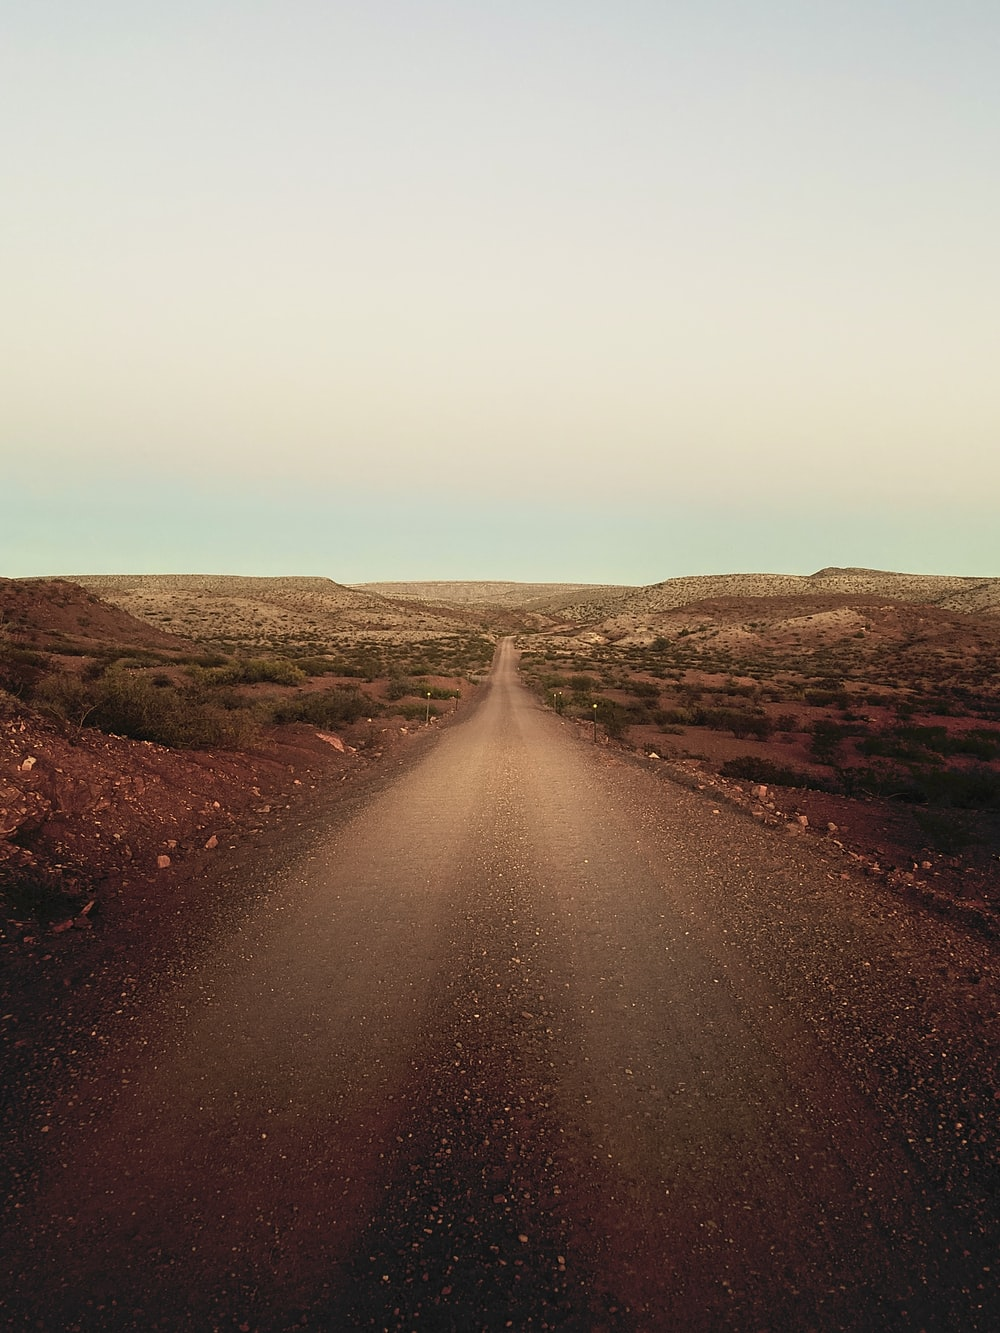 Long Road Ahead Pictures Download Free Images On Unsplash